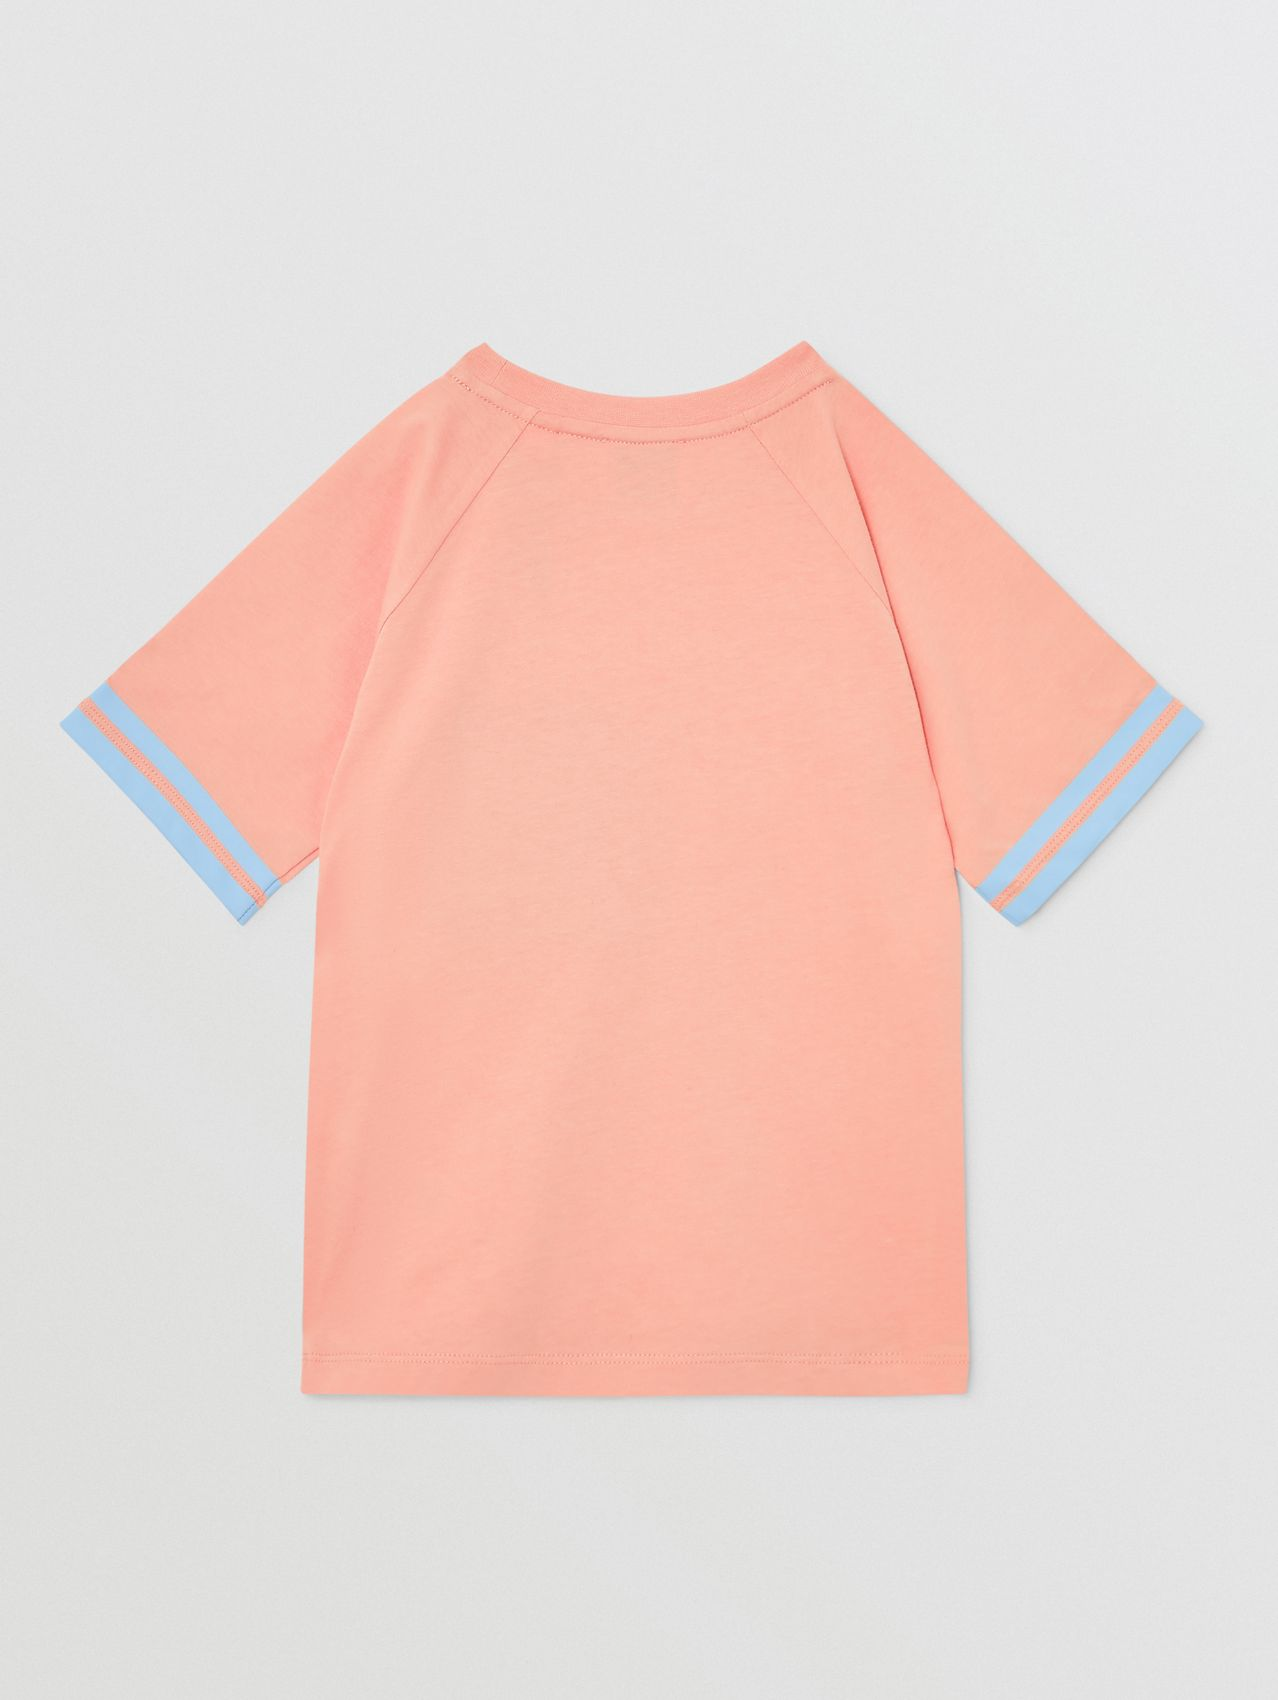 Tape Detail Location Print Cotton T-shirt in Peach